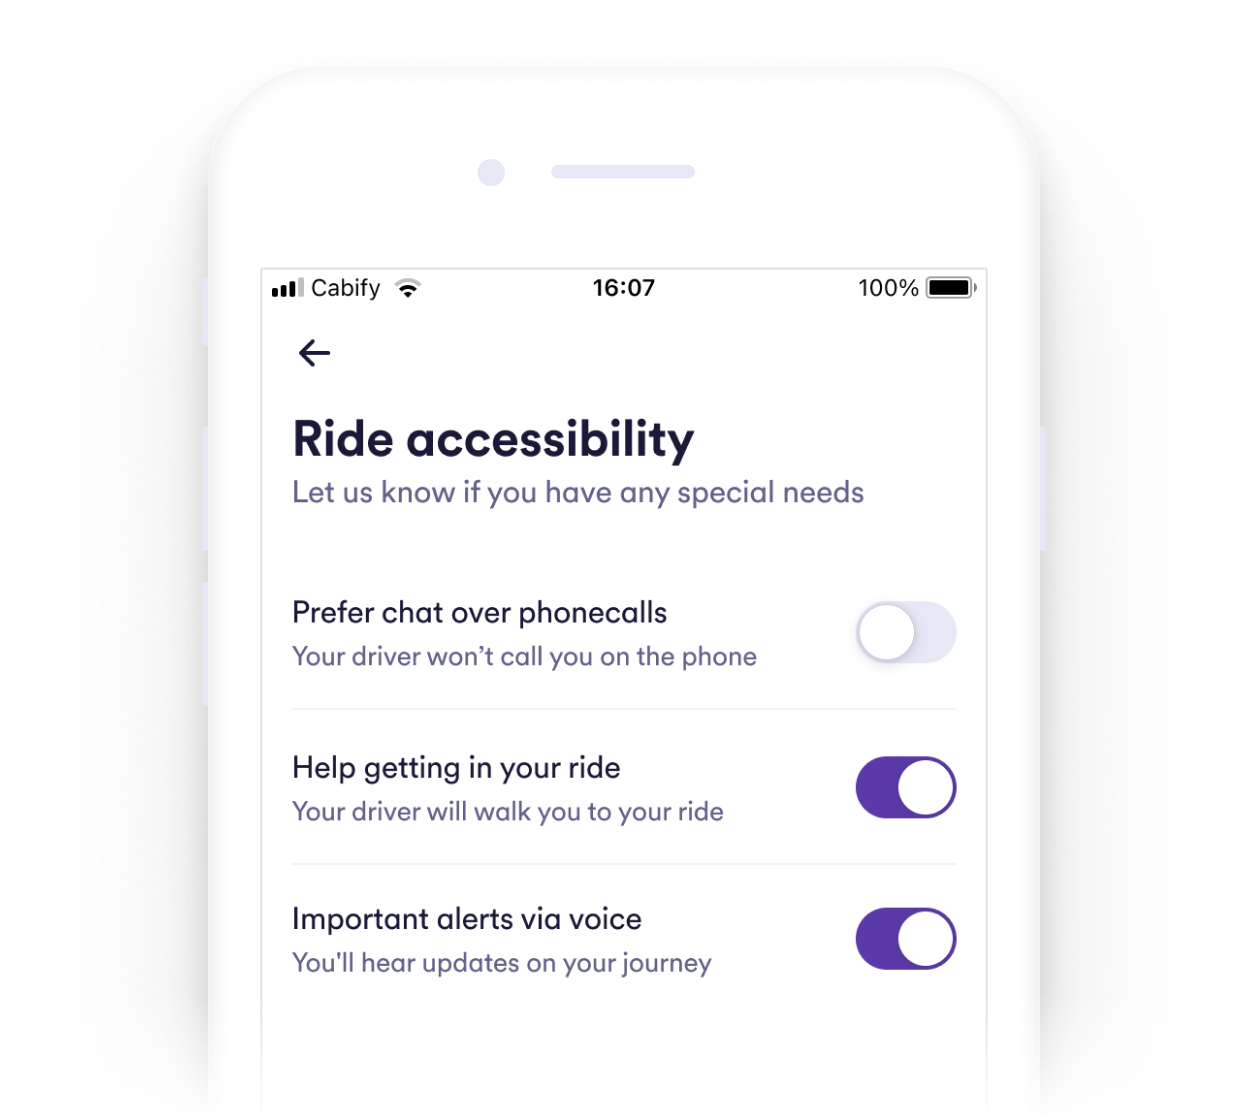 Image showing the Accessibility menu screen in Cabify's app.